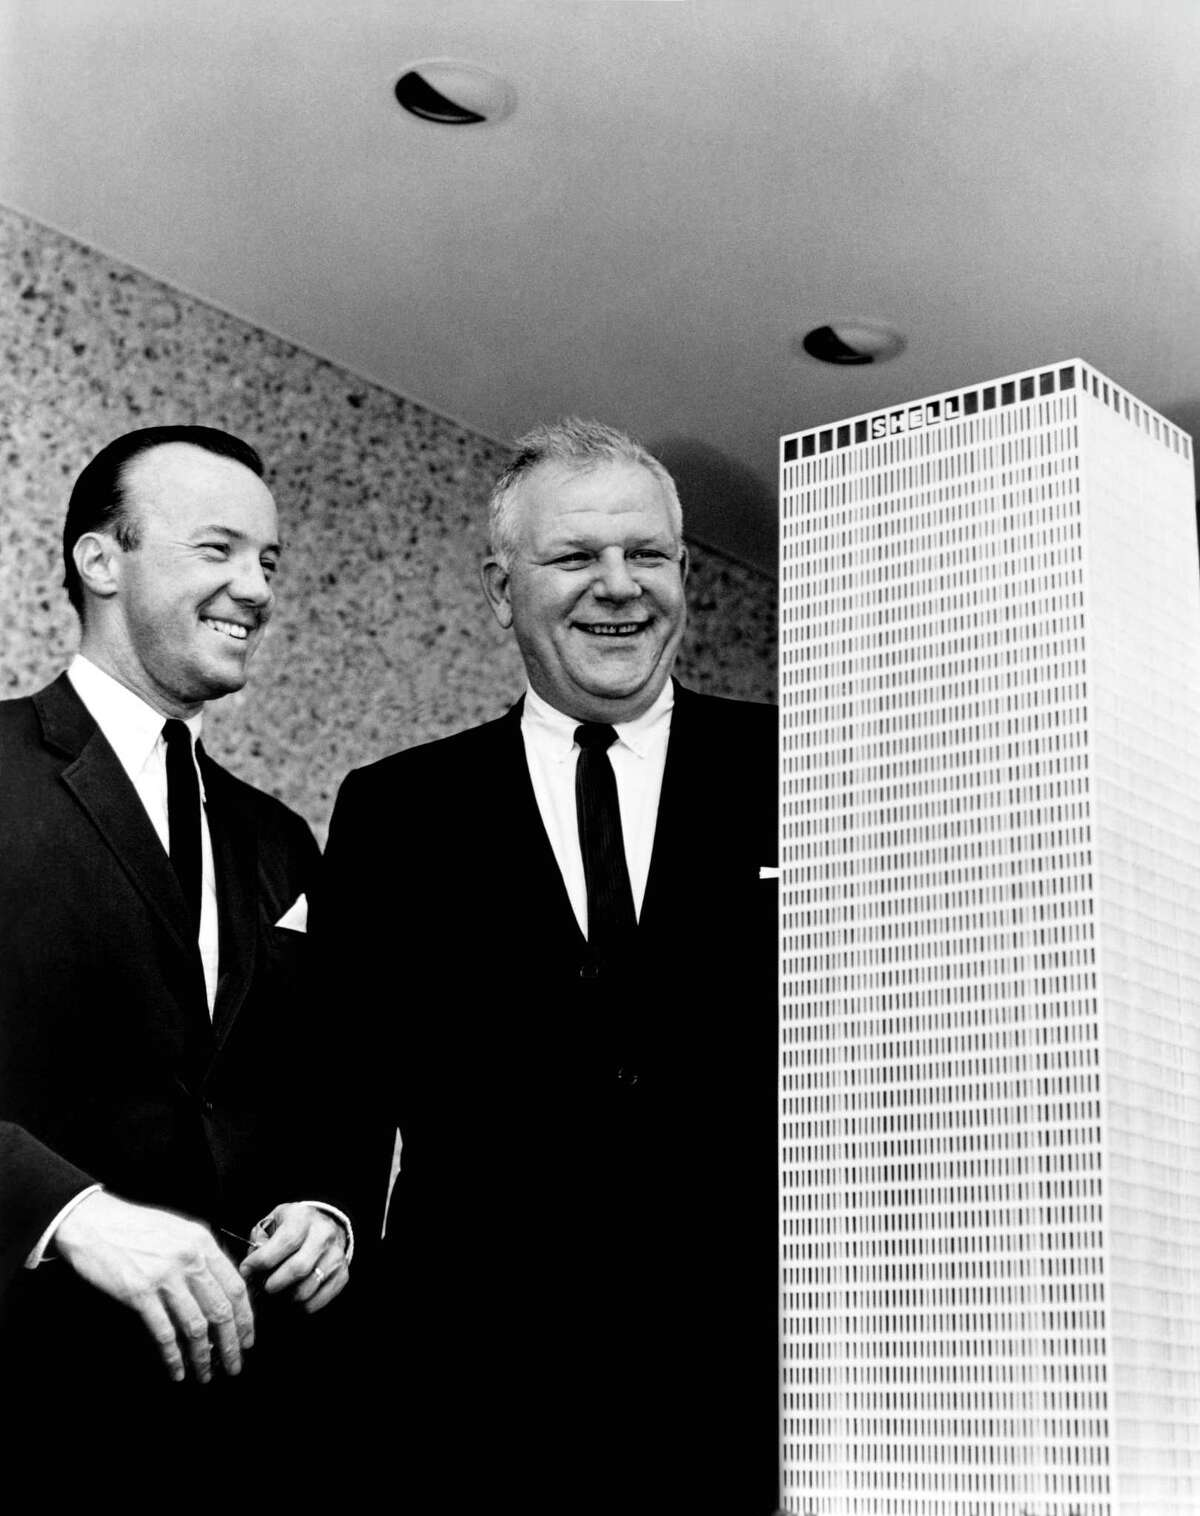 Gerald D. Hines, with E.G. Christianson and a model of One Shell Plaza. Christianson was the head of Shell's Houston operations.